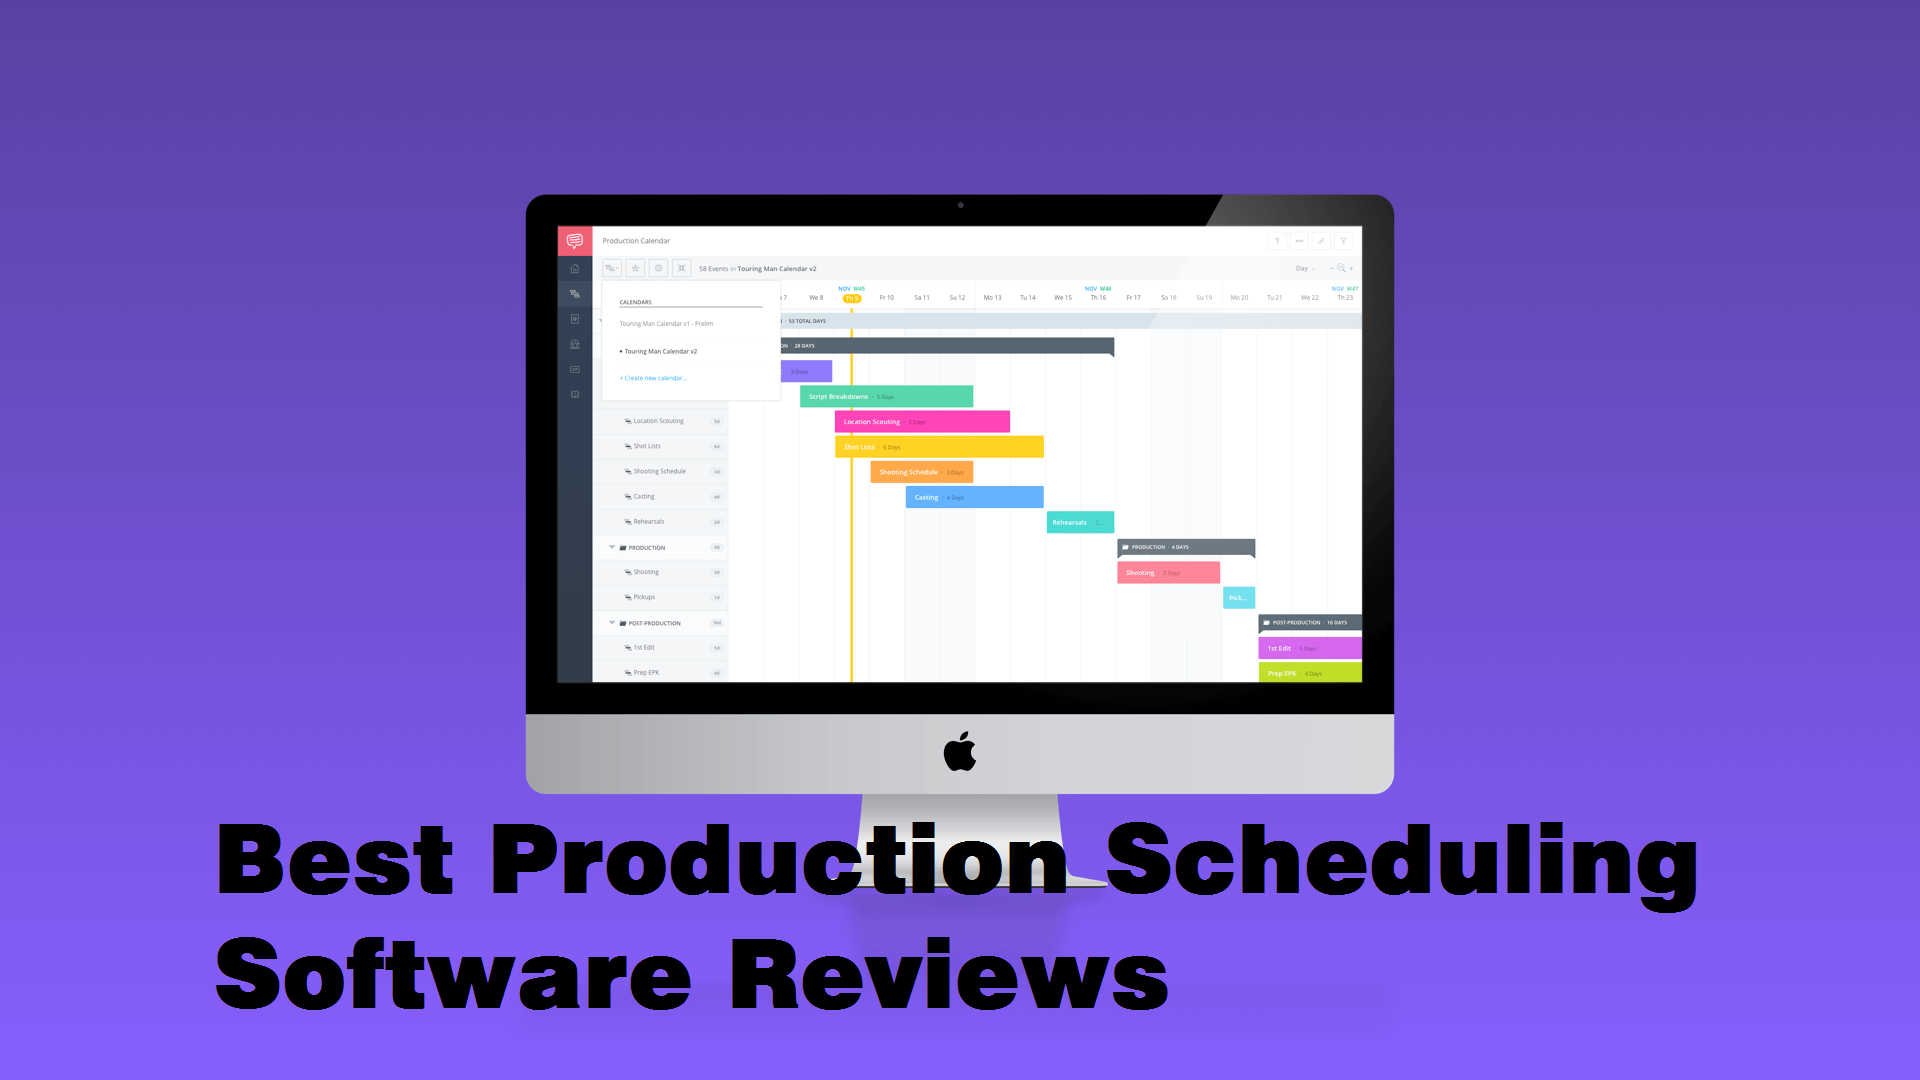 Best Production Scheduling Software Reviews